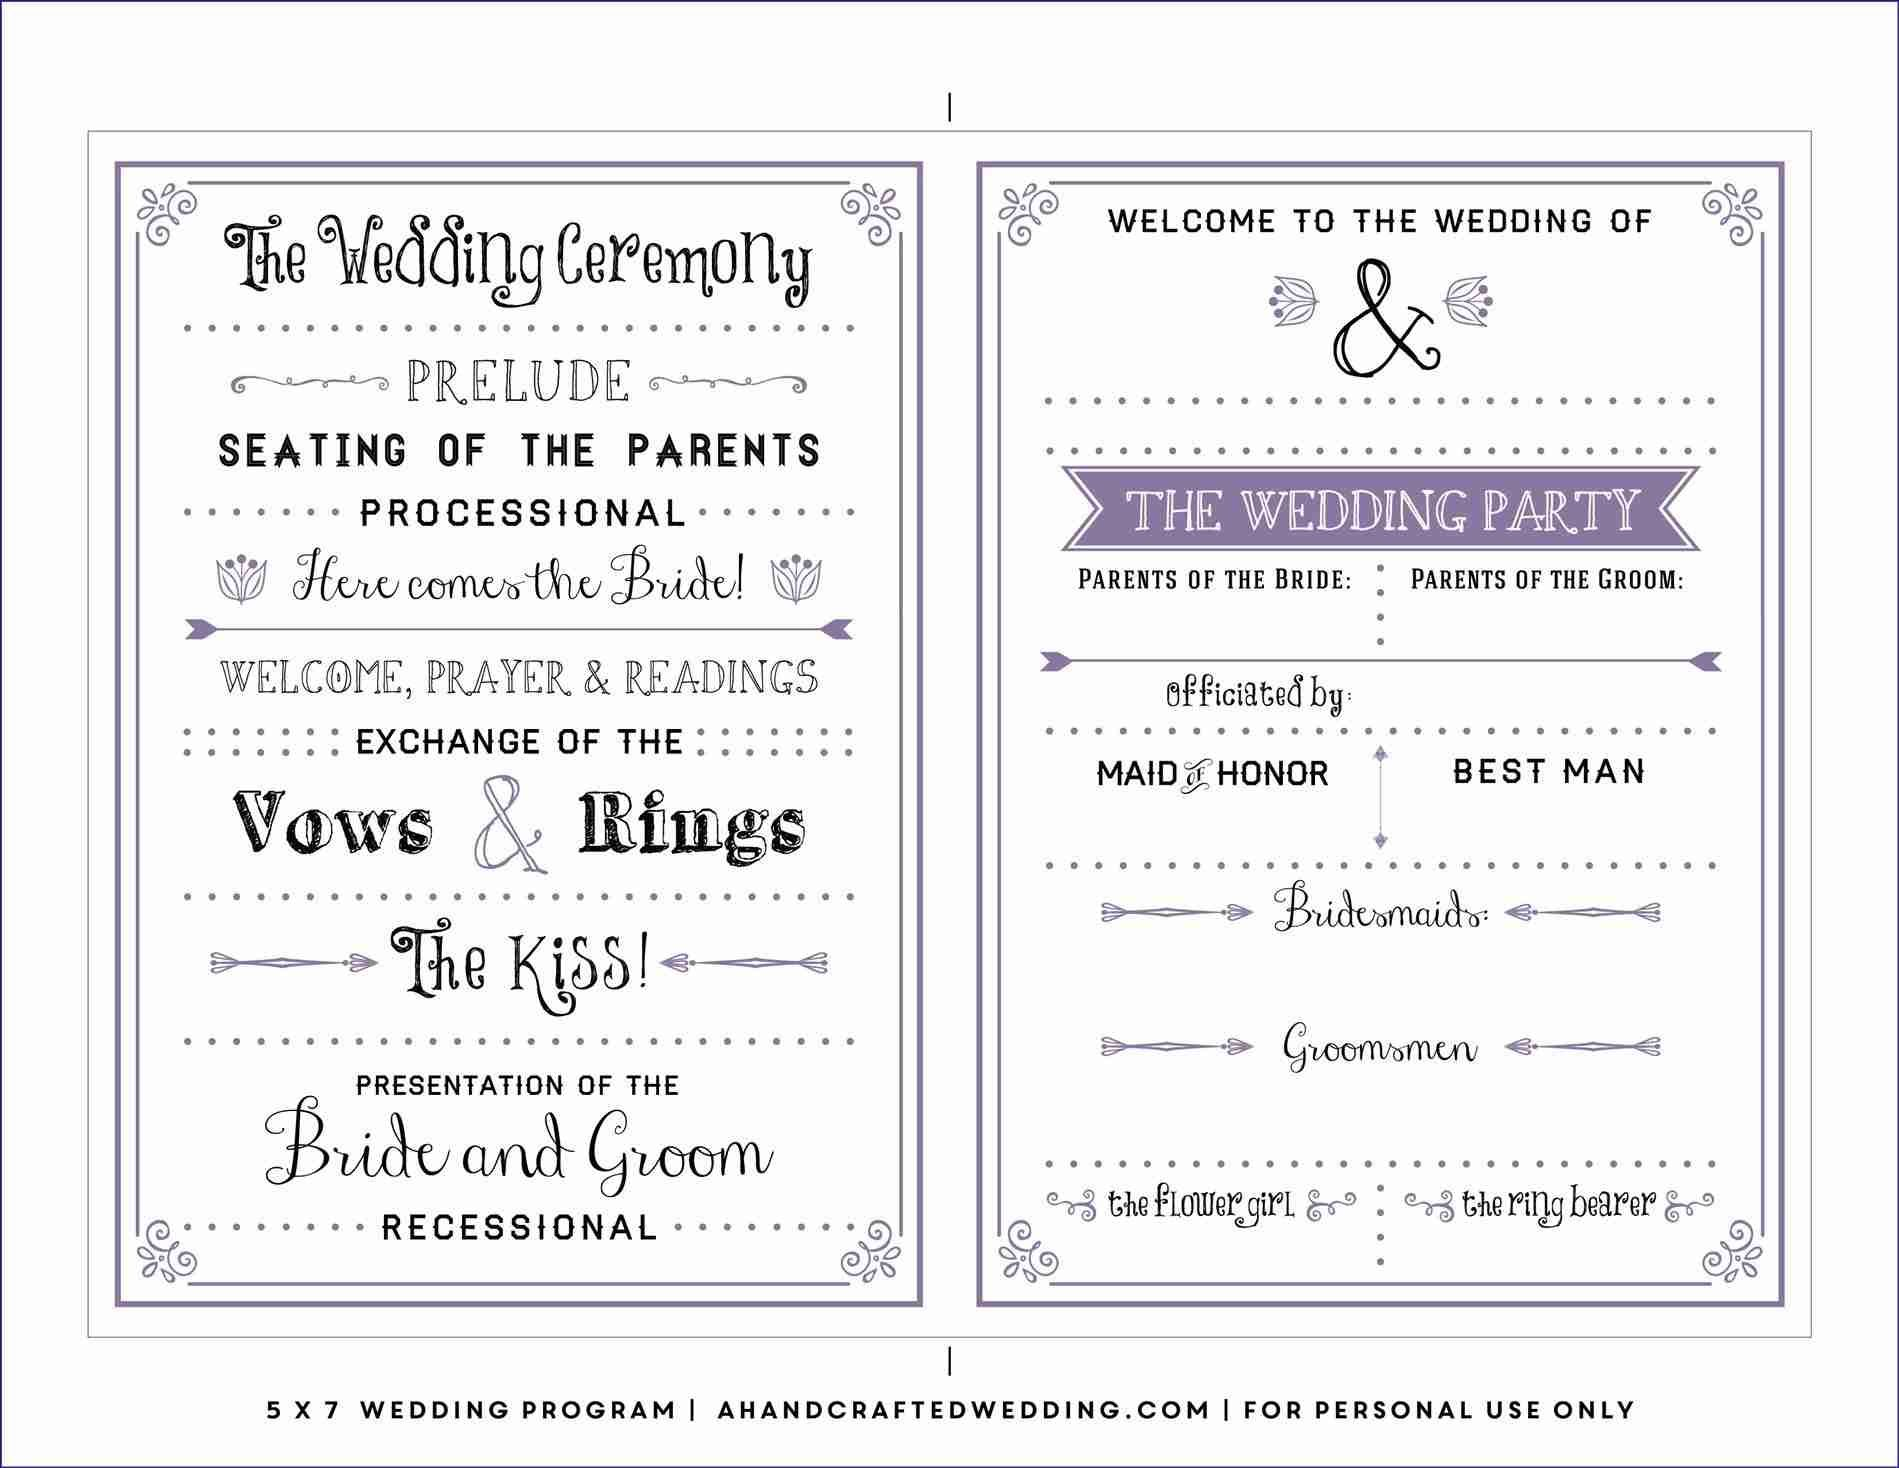 new post free downloadable wedding program template that can be printed weddings pinterest program template wedding programs and diy wedding